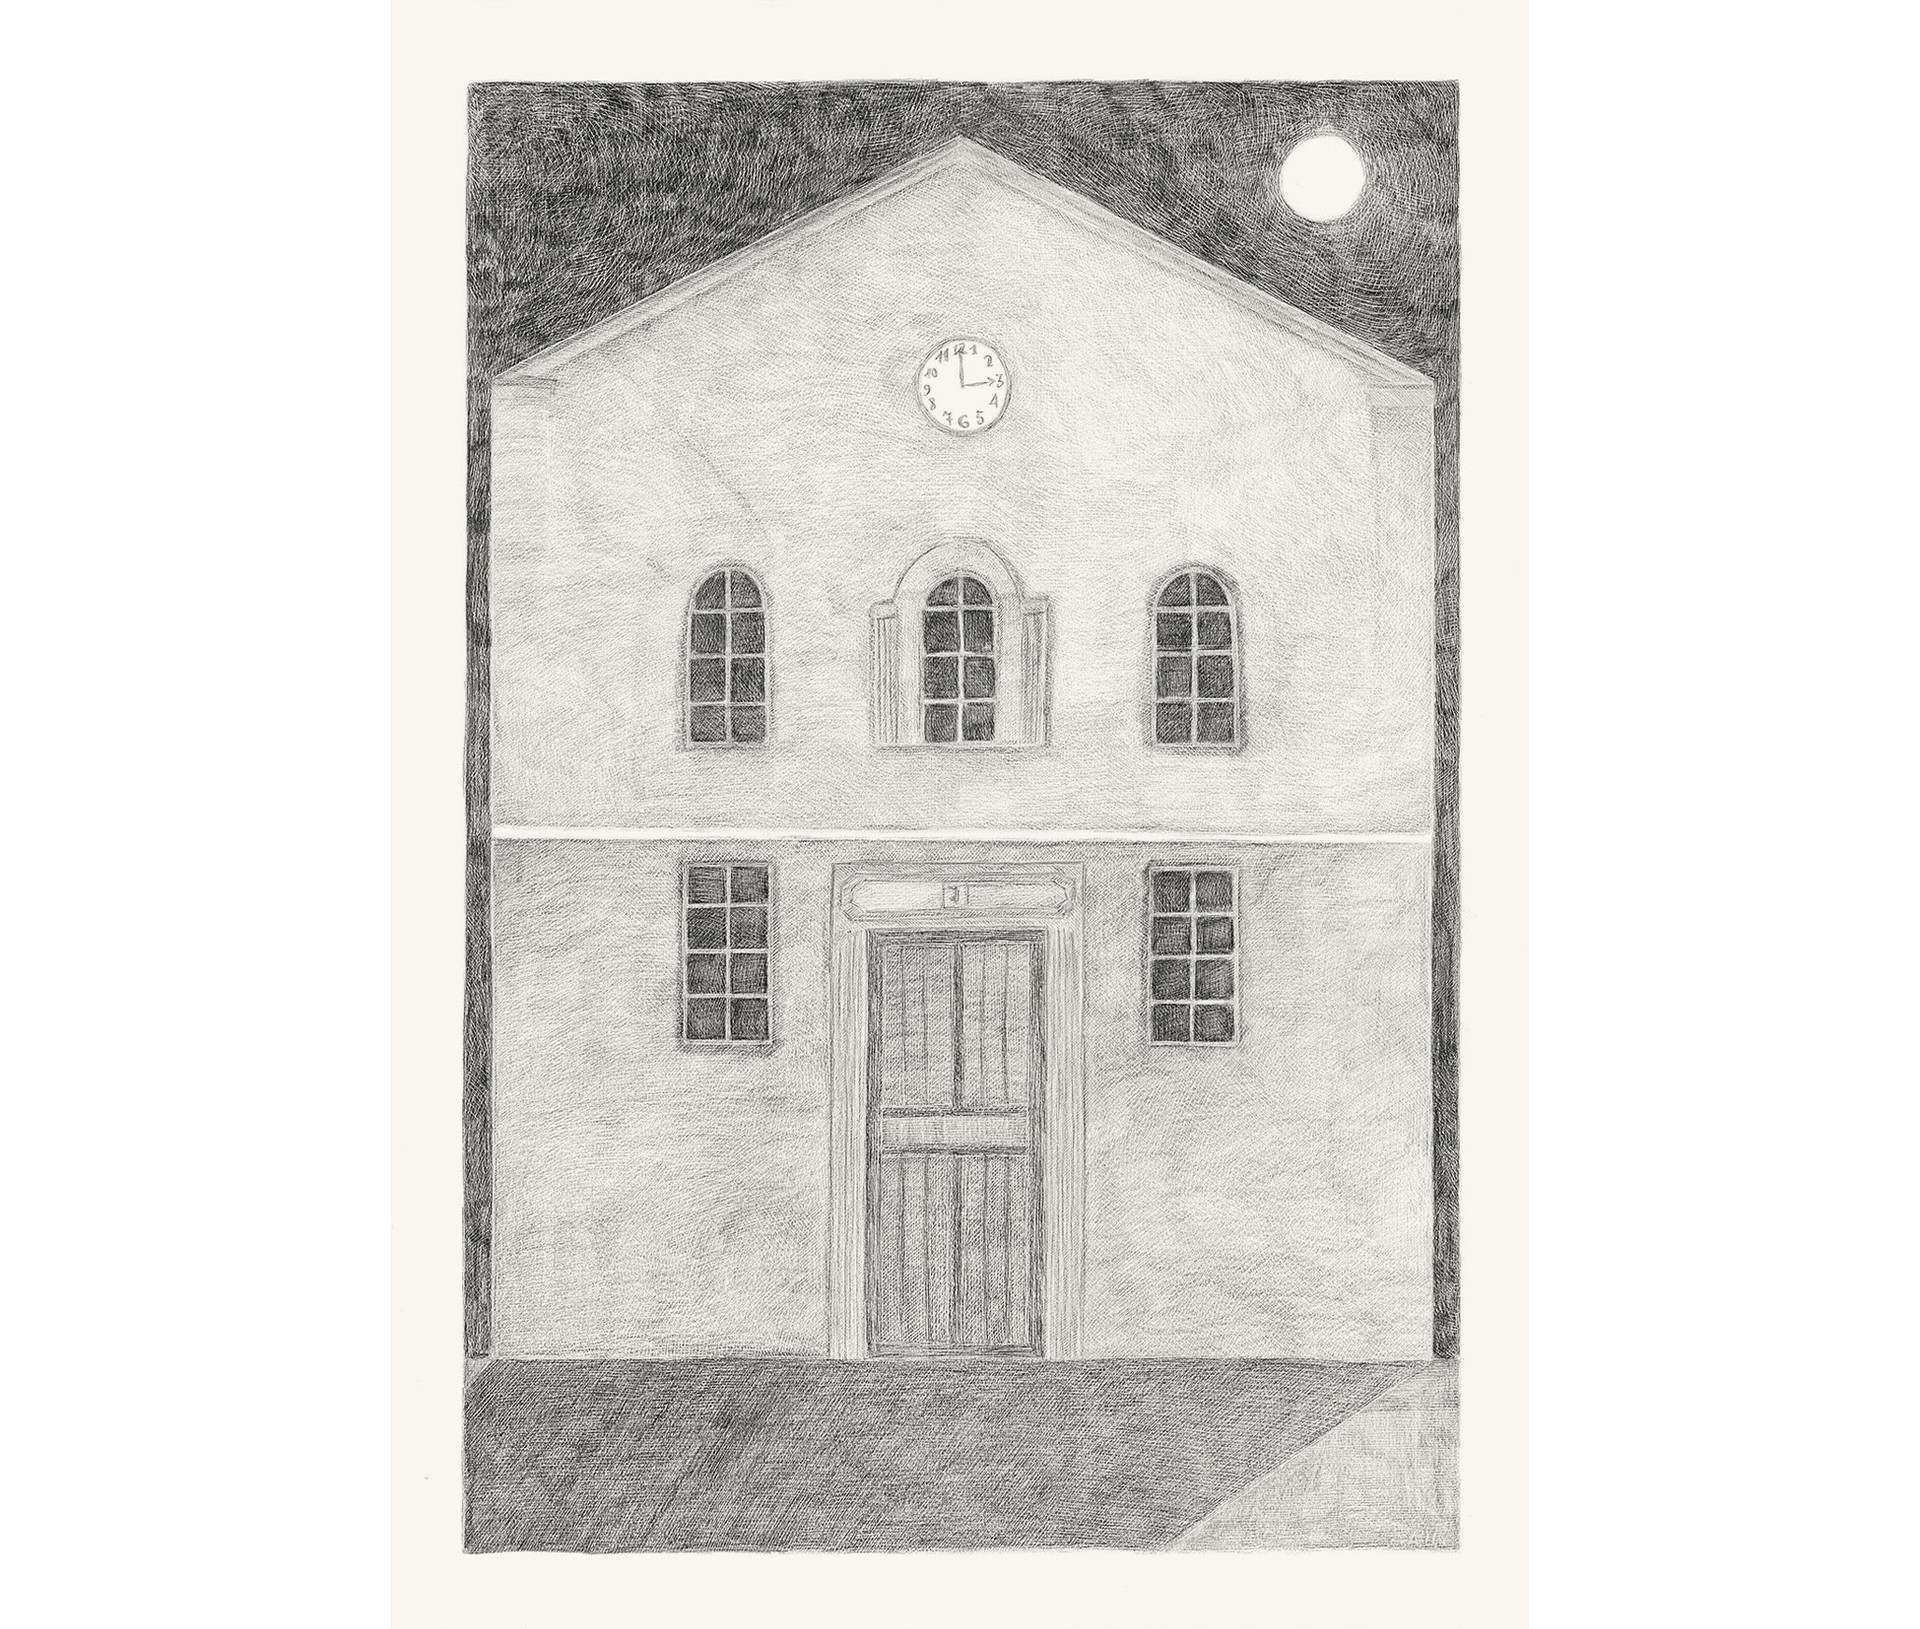 House Number Seven, 2012. Pencils on paper, 42 × 29.7 cm